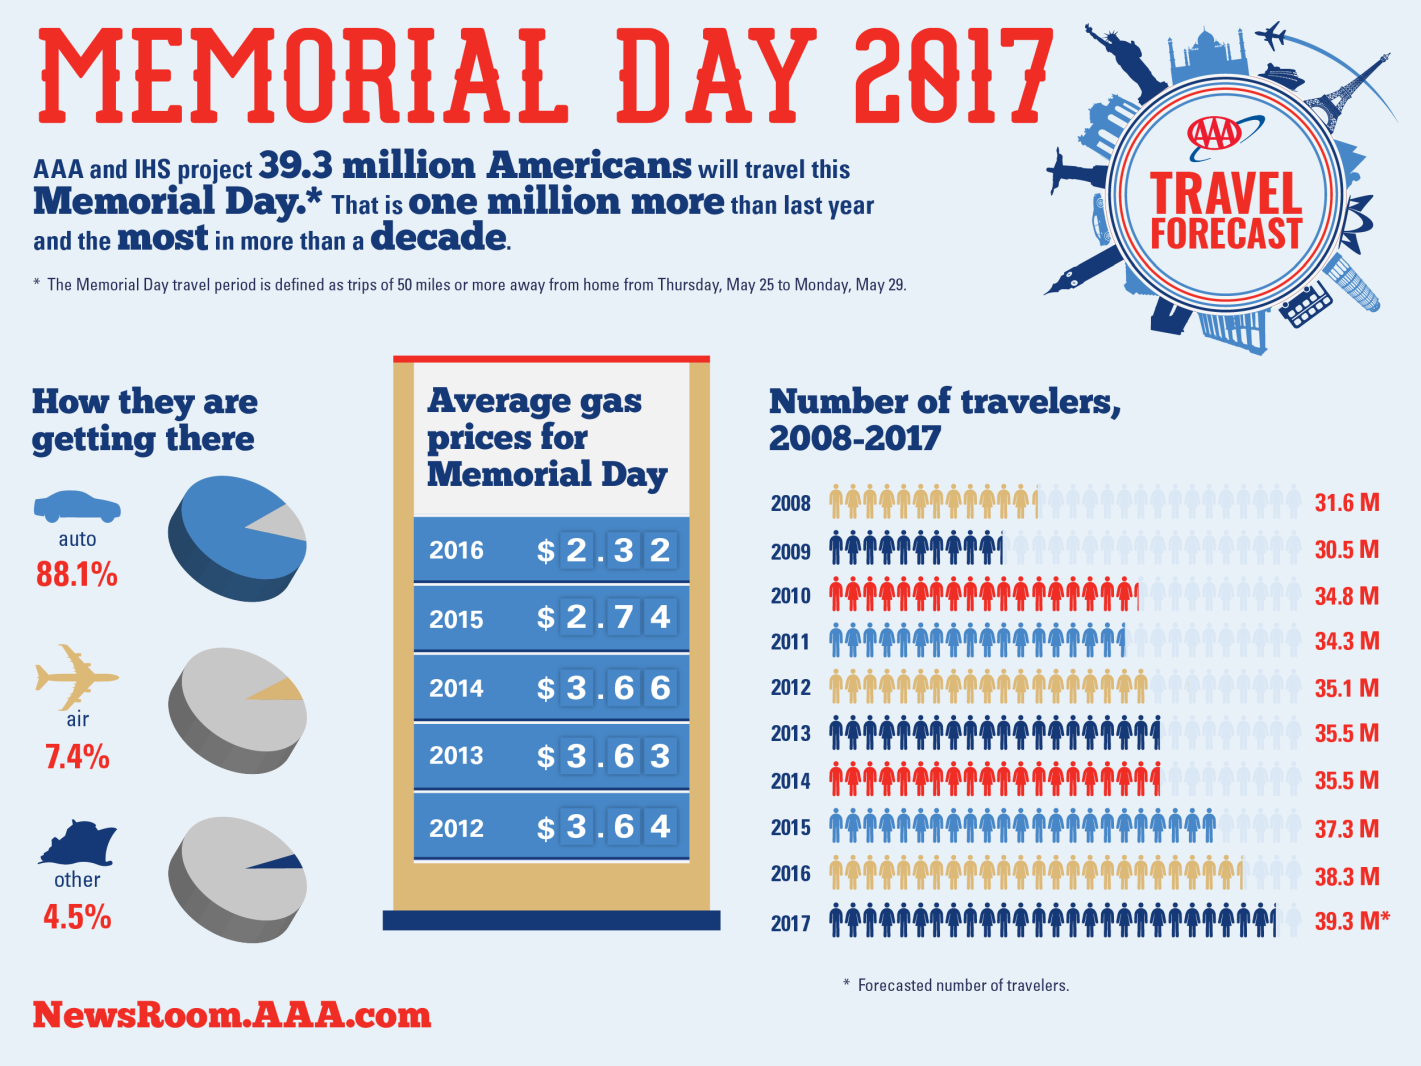 2017 AAA Memorial Day Weekend Travel forecast